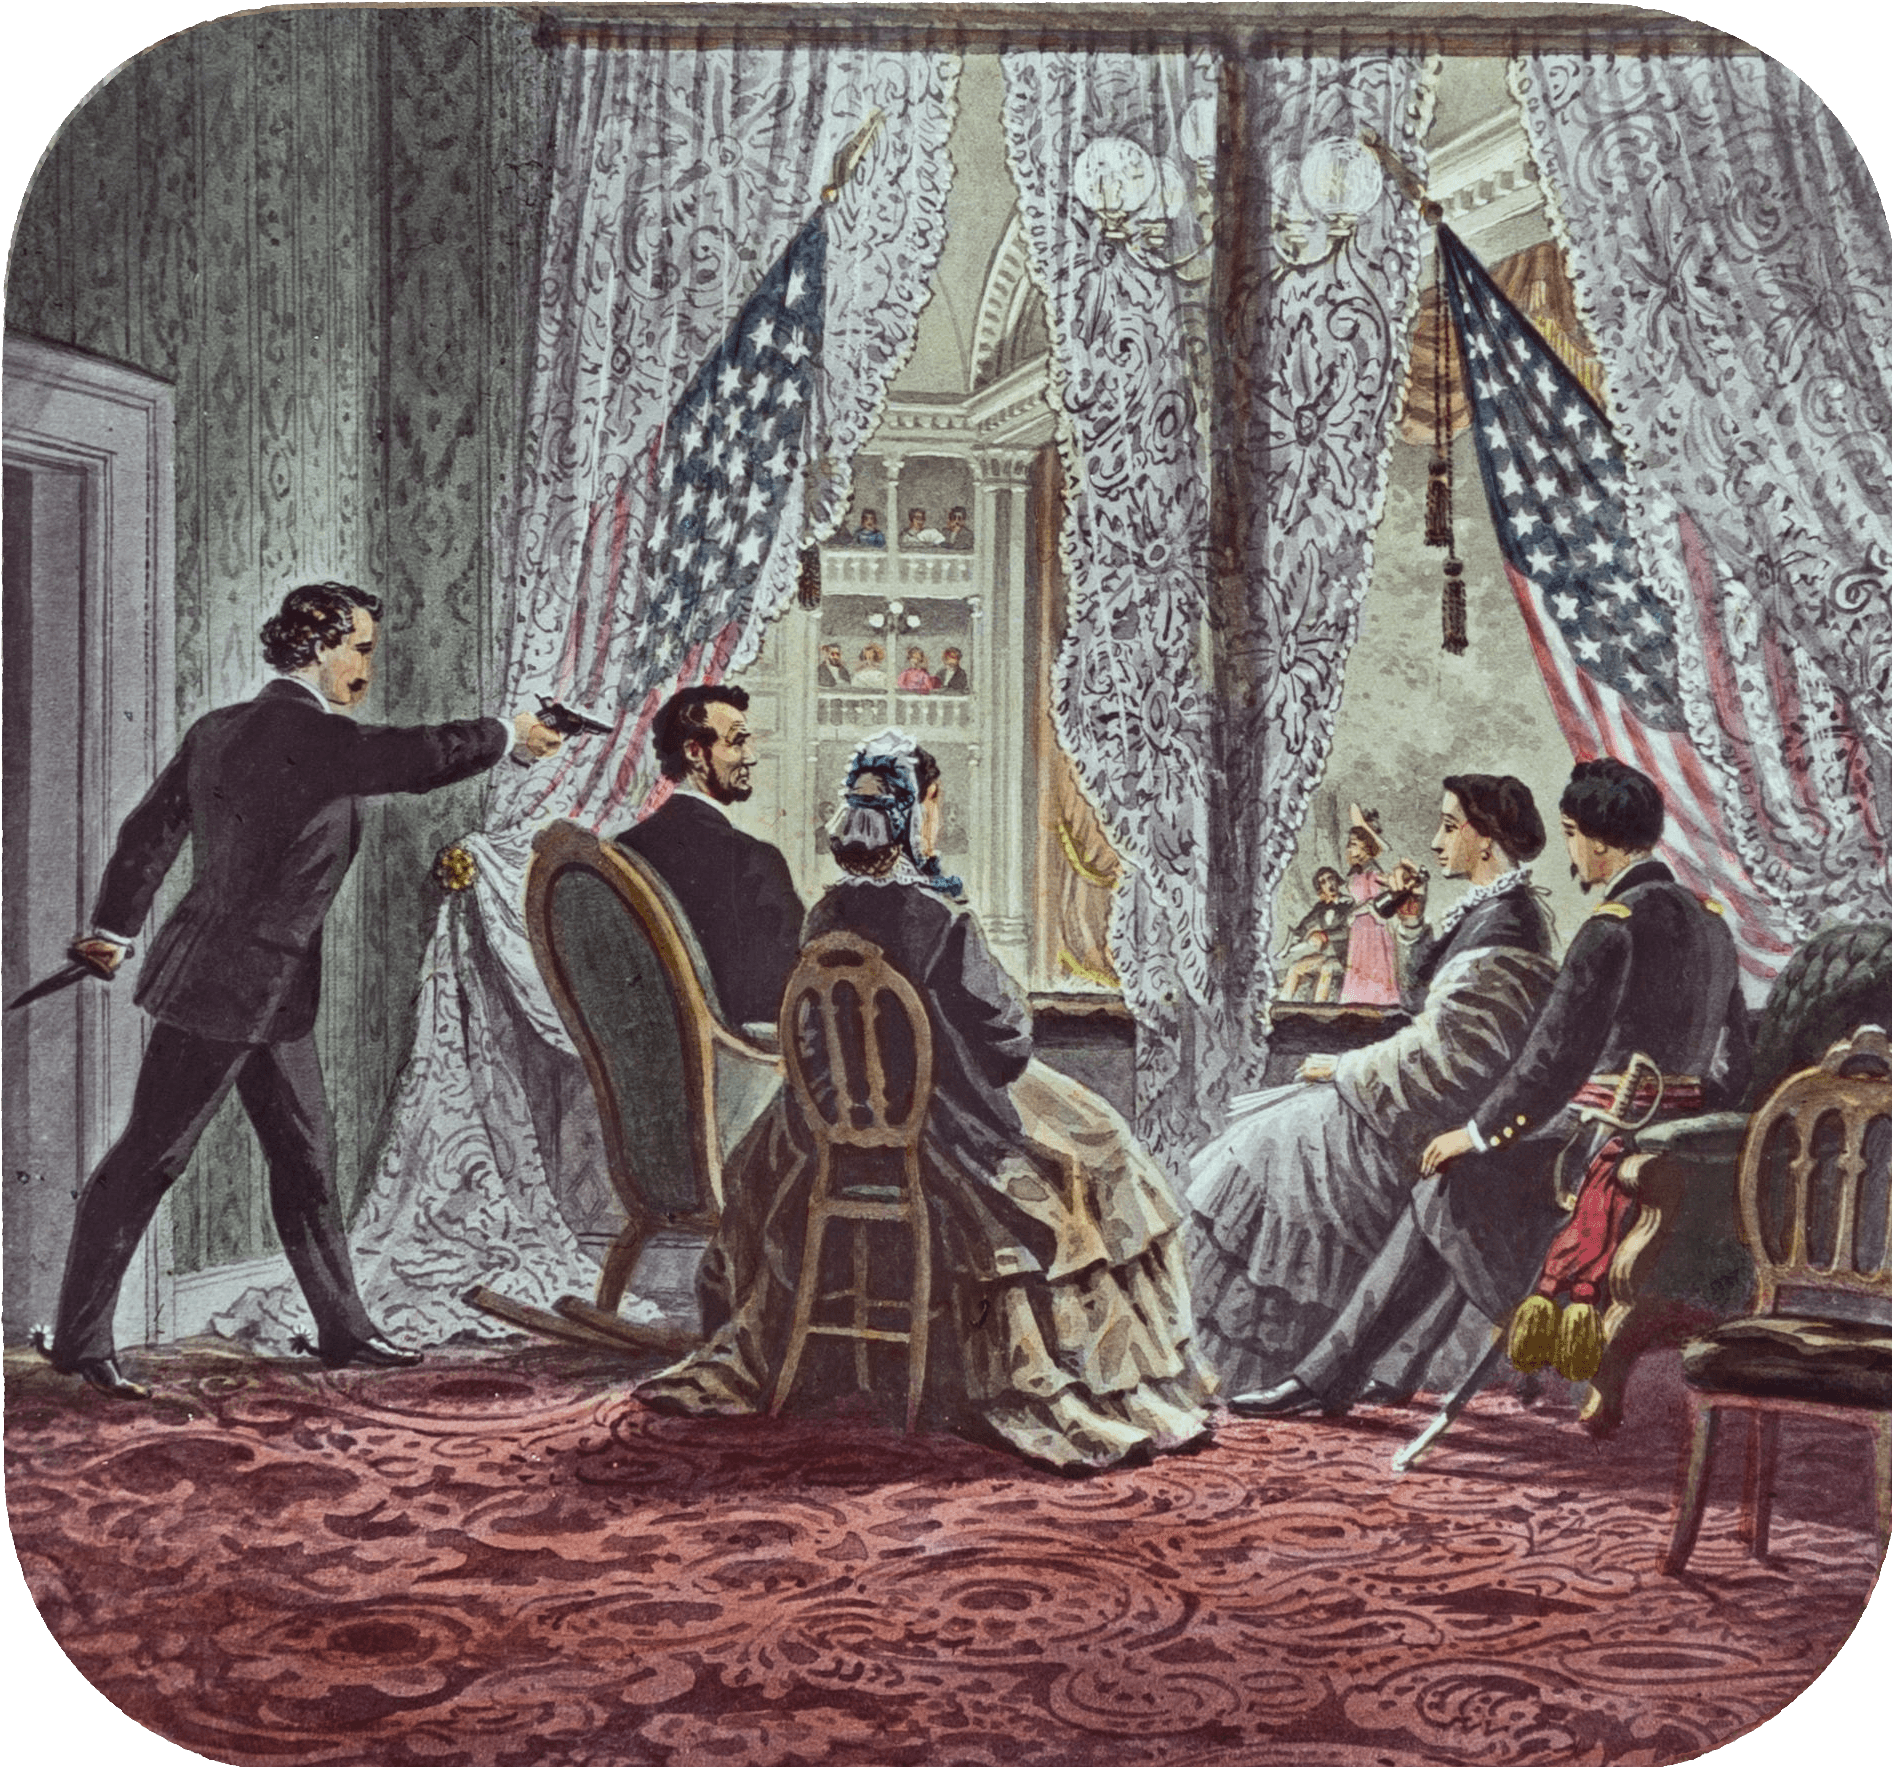 Random Heartbreaking Facts About Mary Todd Lincoln, America's Most Tragic First Lady